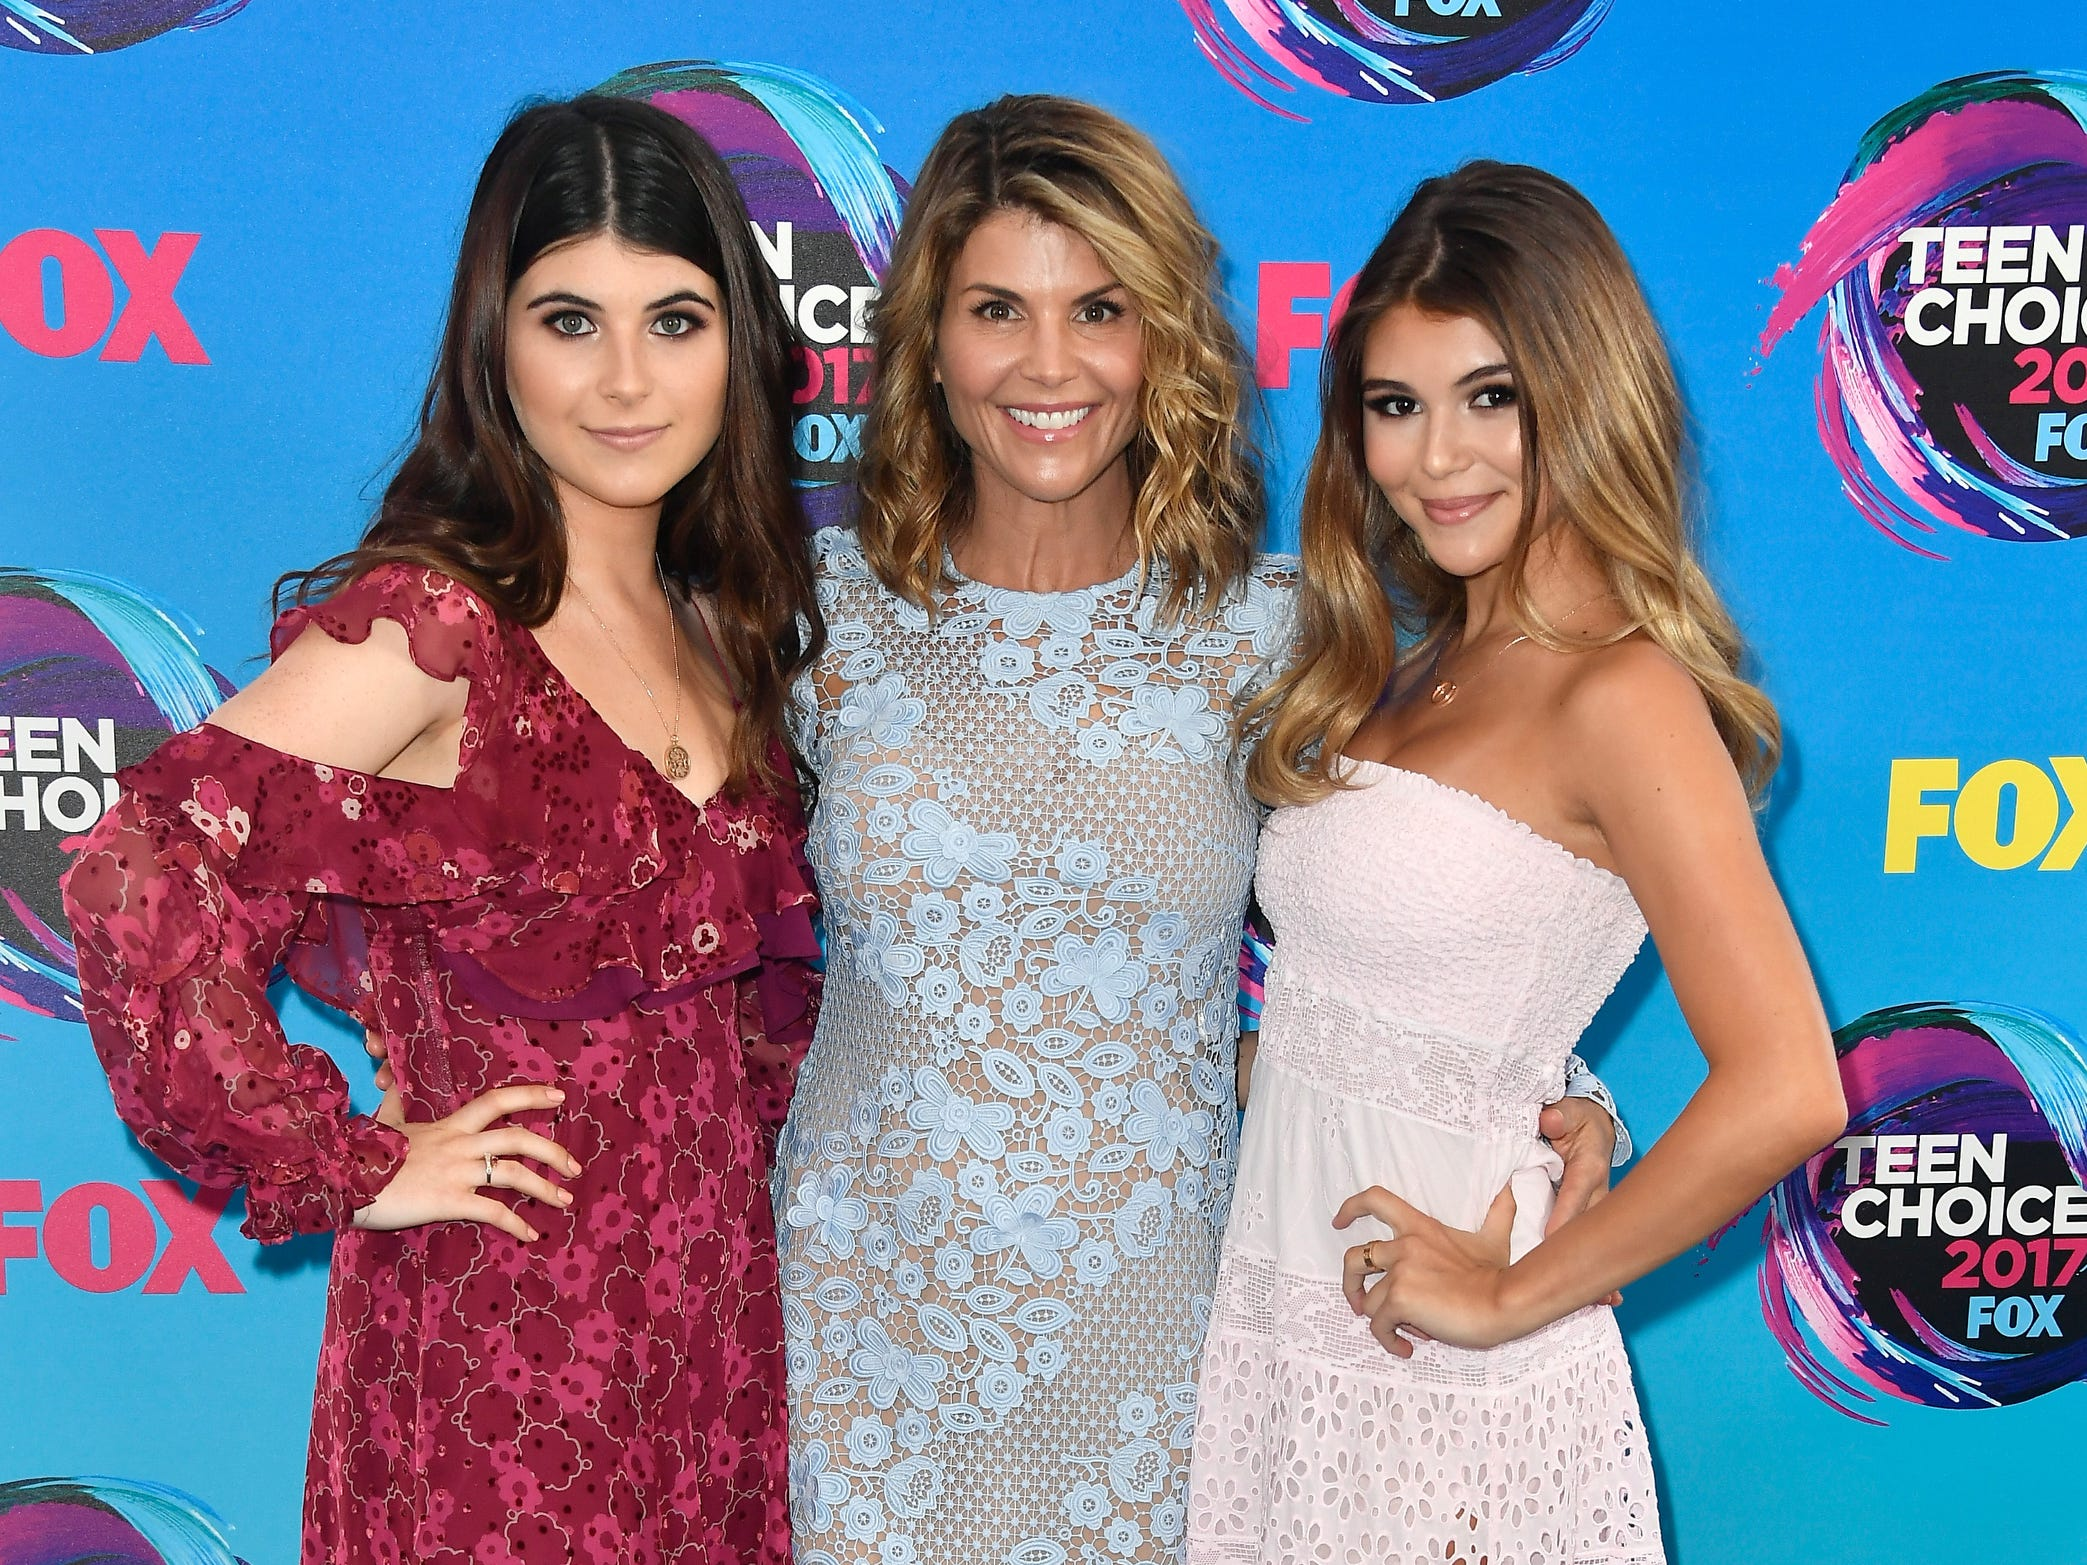 Isabella Giannulli, left, Lori Loughlin and Olivia Giannulli, right, attend the Teen Choice Awards 2017 at Galen Center on Aug. 13, 2017, in Los Angeles.